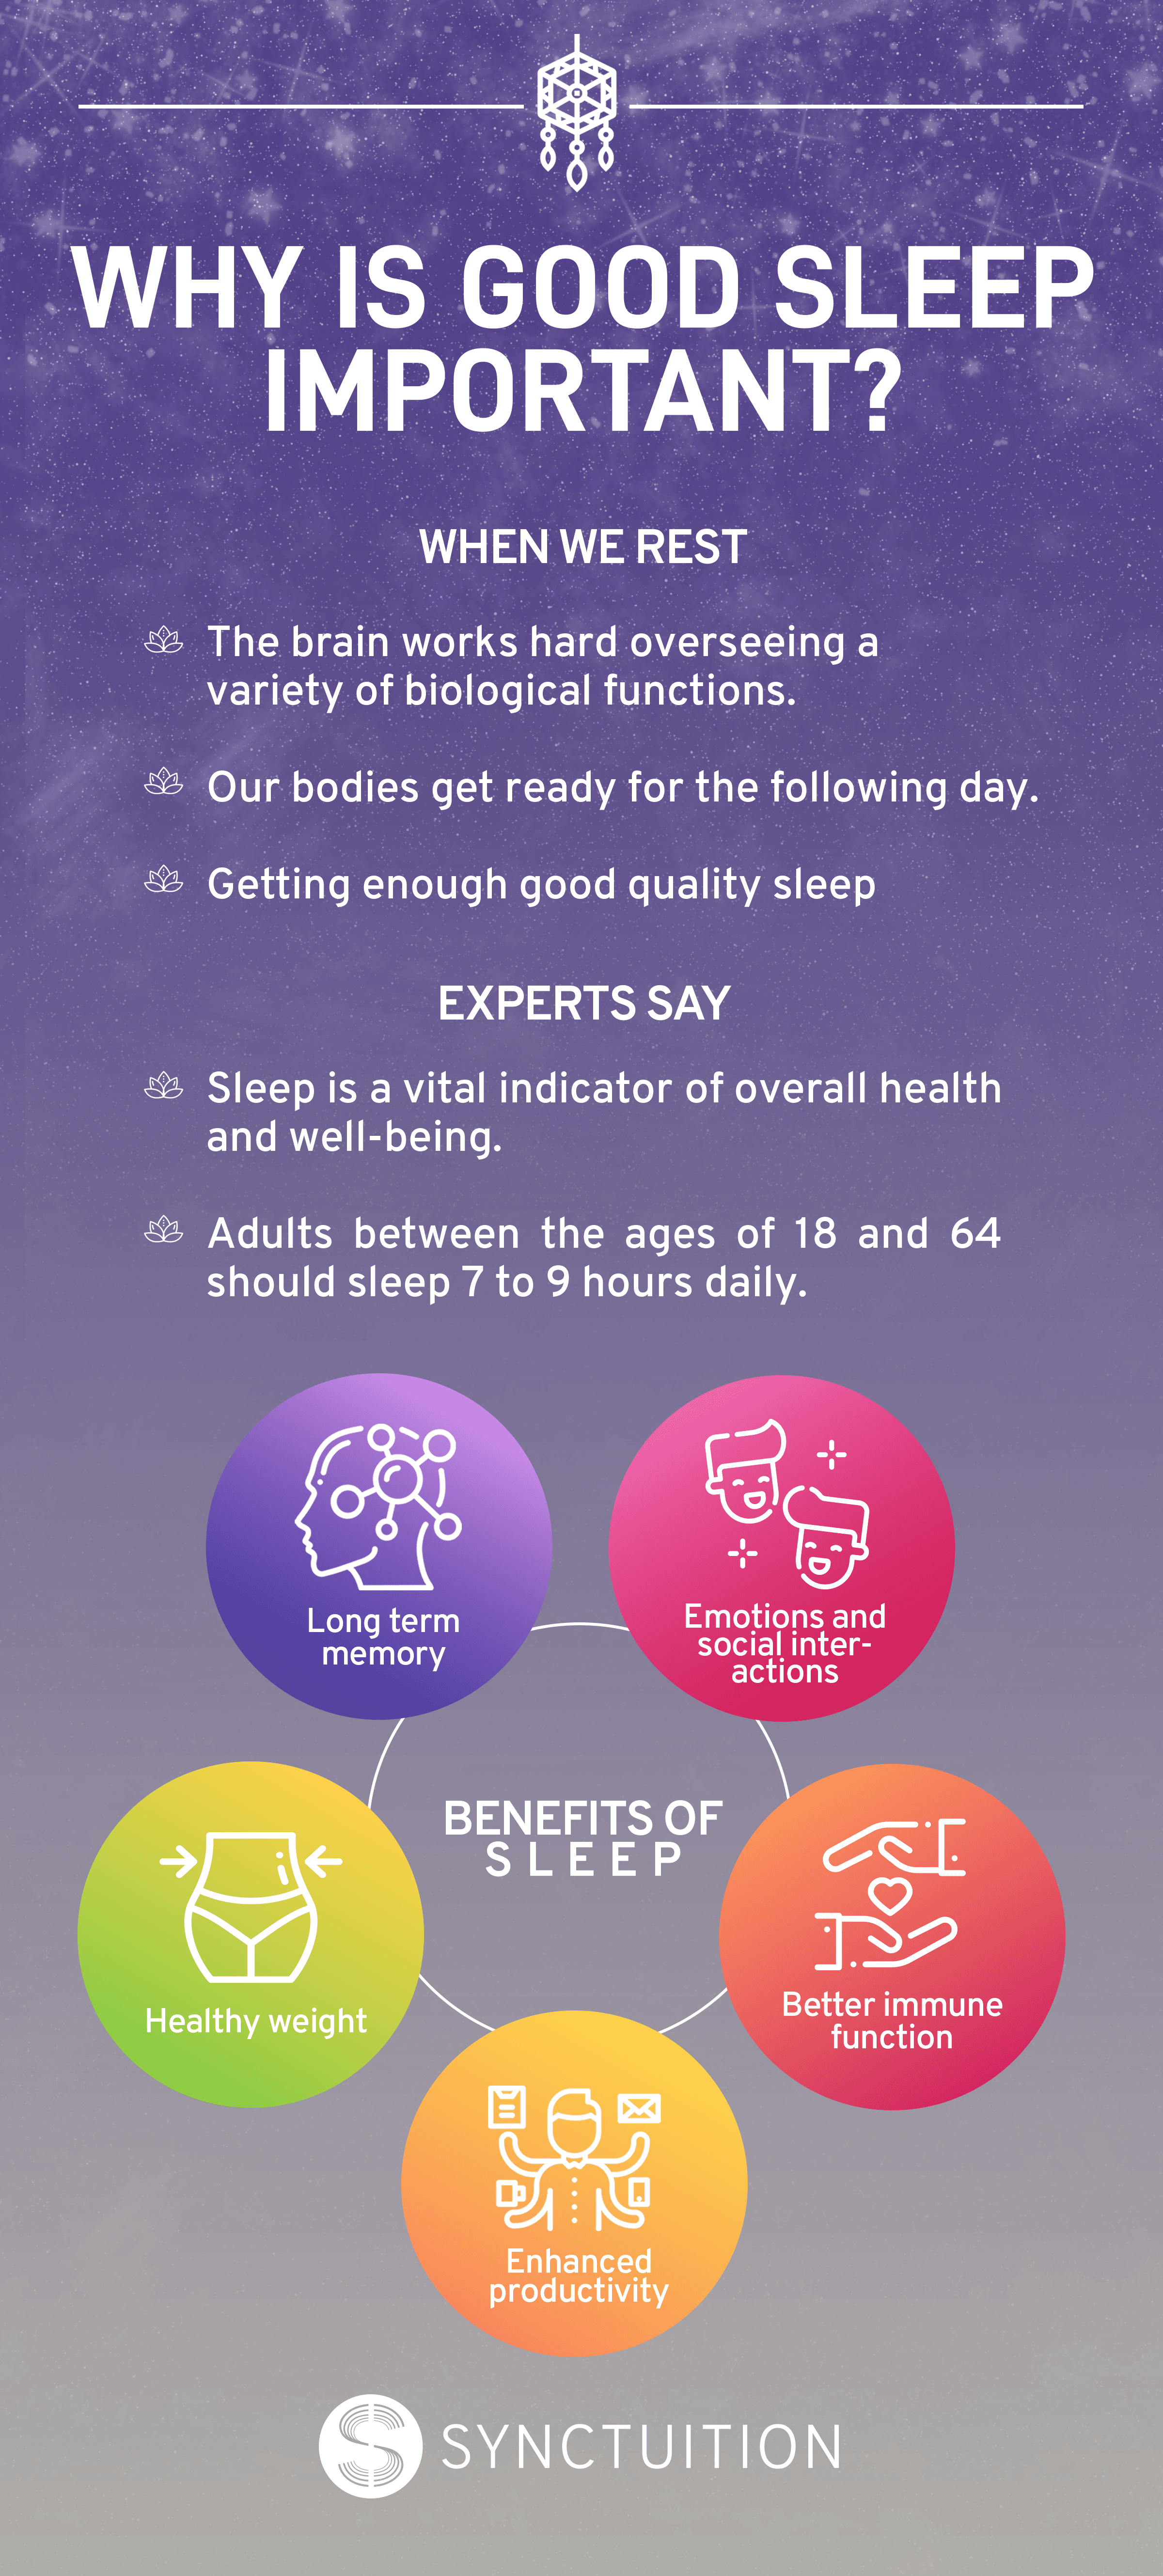 Benefits of sleep Infographic. Benefits of sleep vary from enhanced productivity to healthy weight.